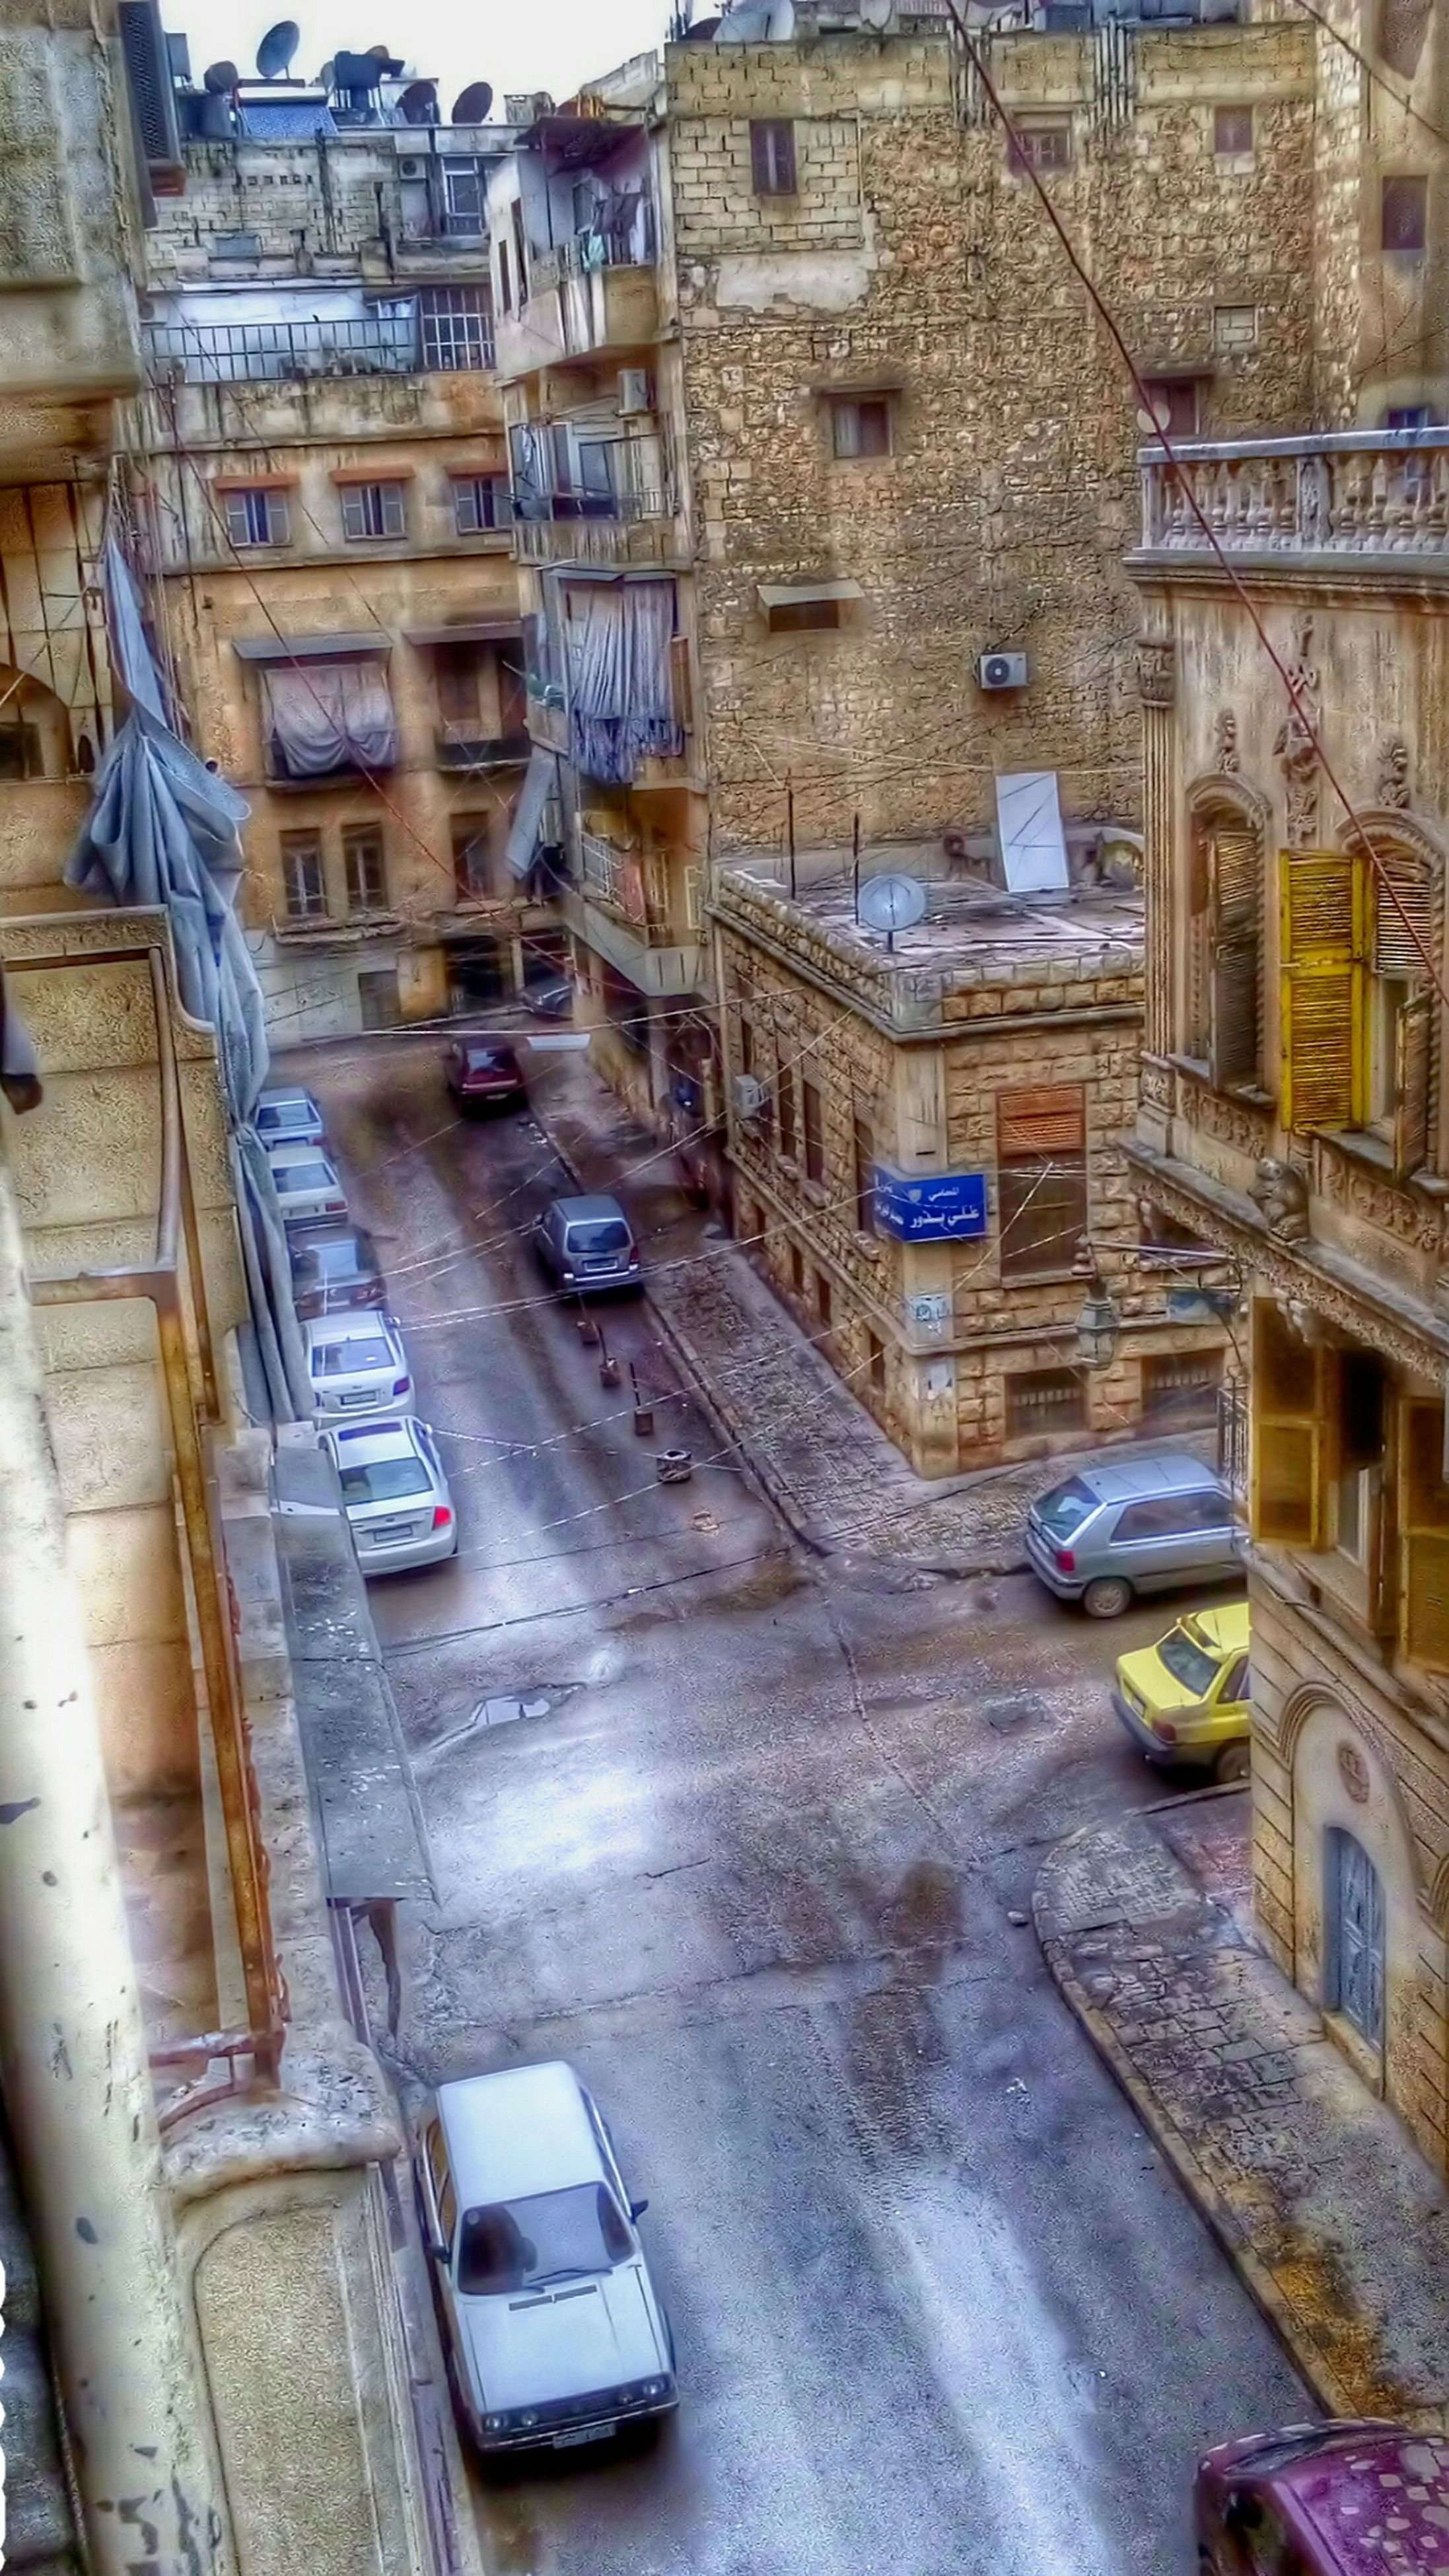 building exterior, city, high angle view, architecture, transportation, street, built structure, road, car, outdoors, land vehicle, winter, no people, day